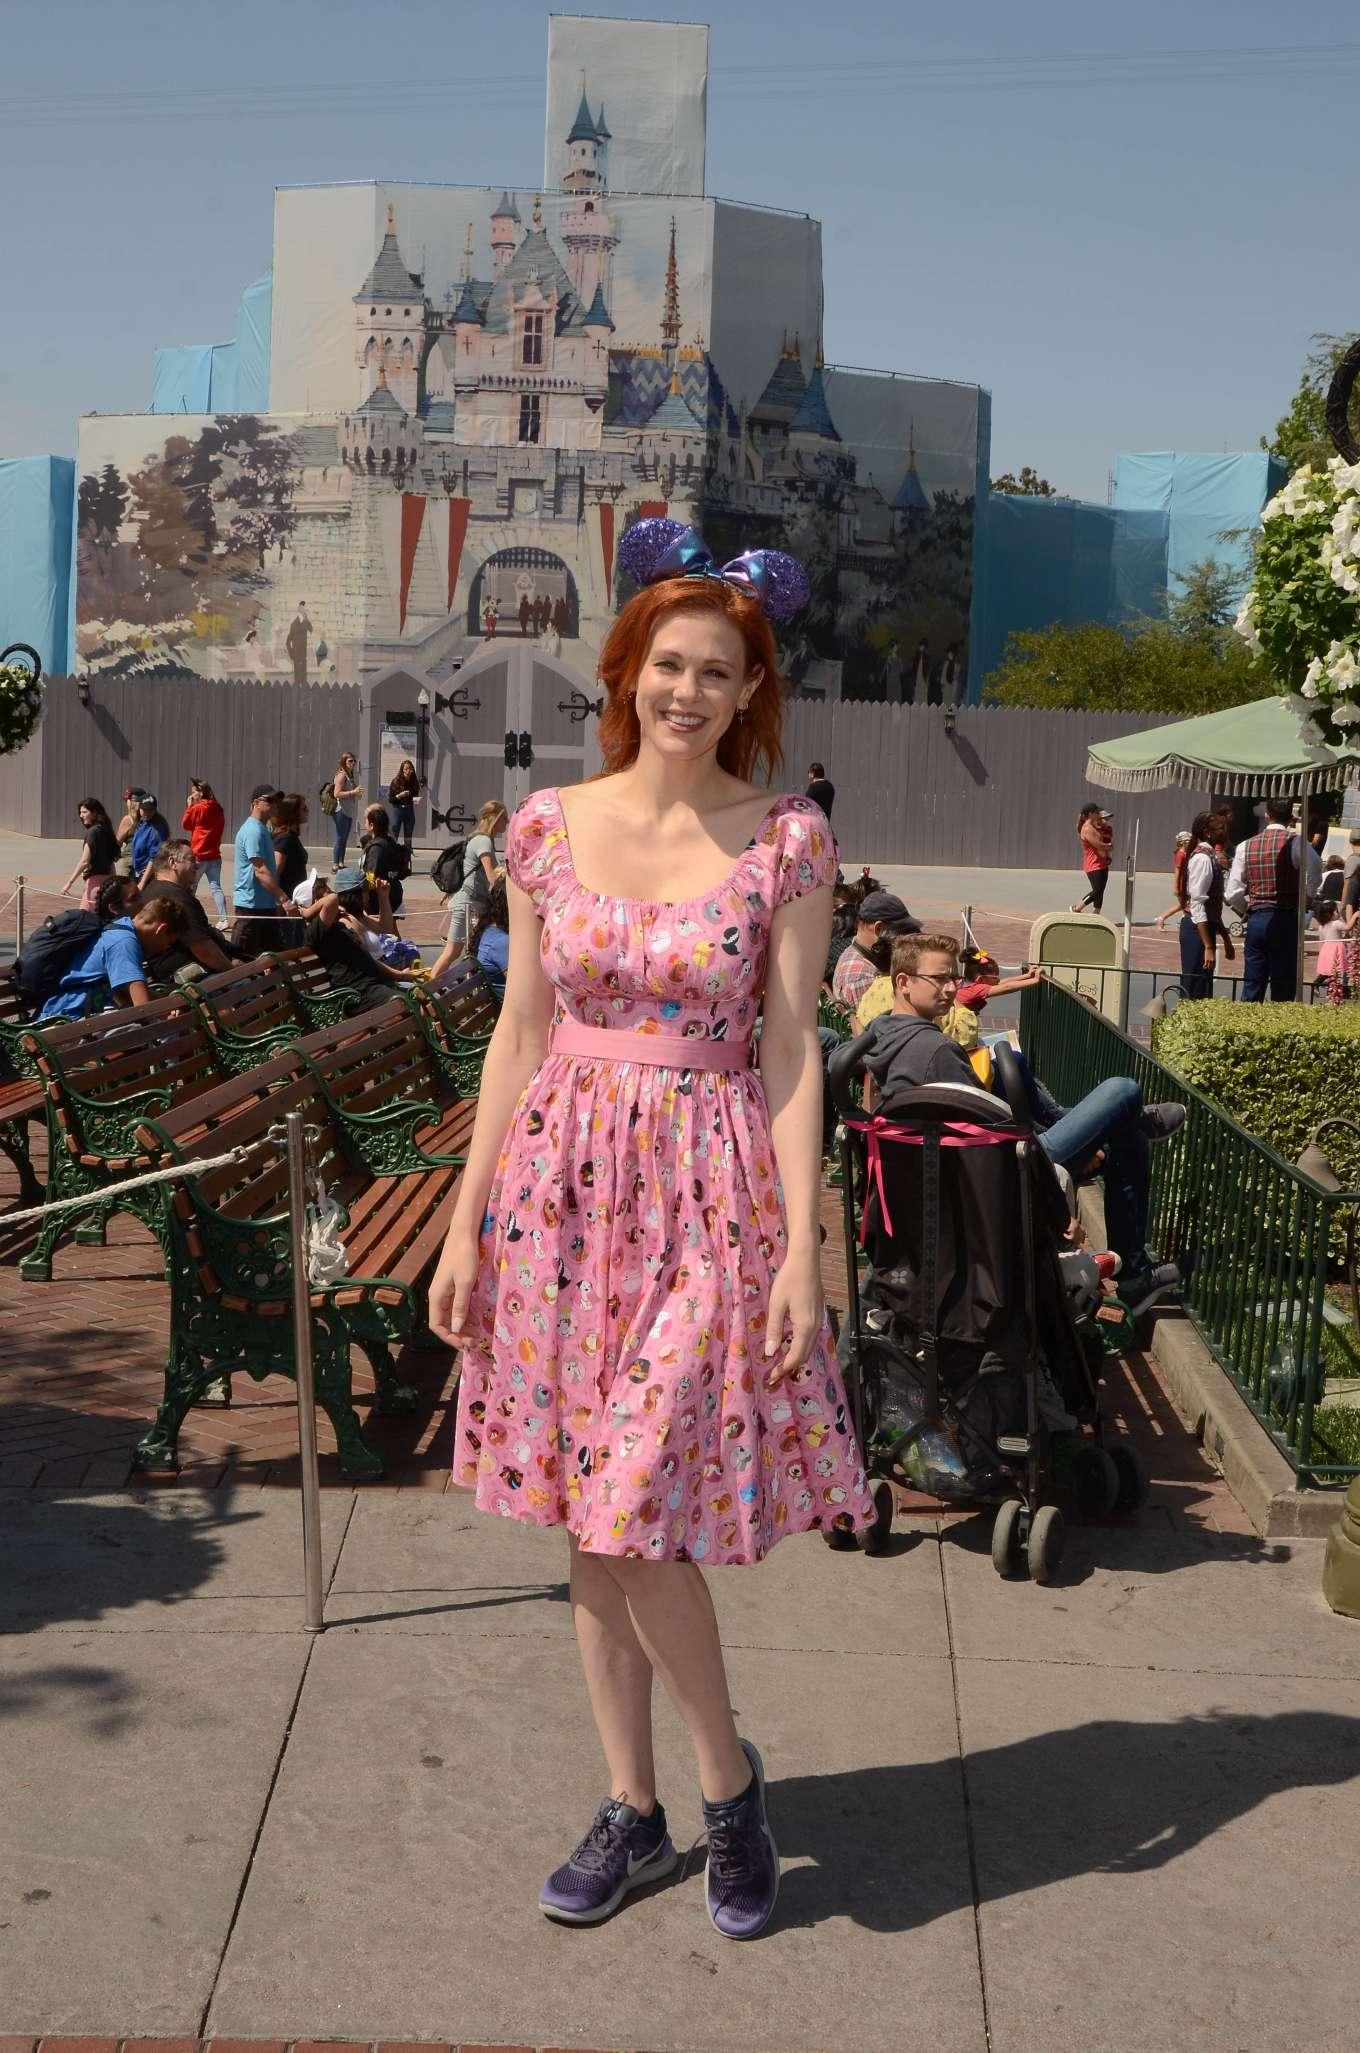 Maitland Ward 2019 : Maitland Ward: Celebrating International Star Wars Day at Disneyland -15